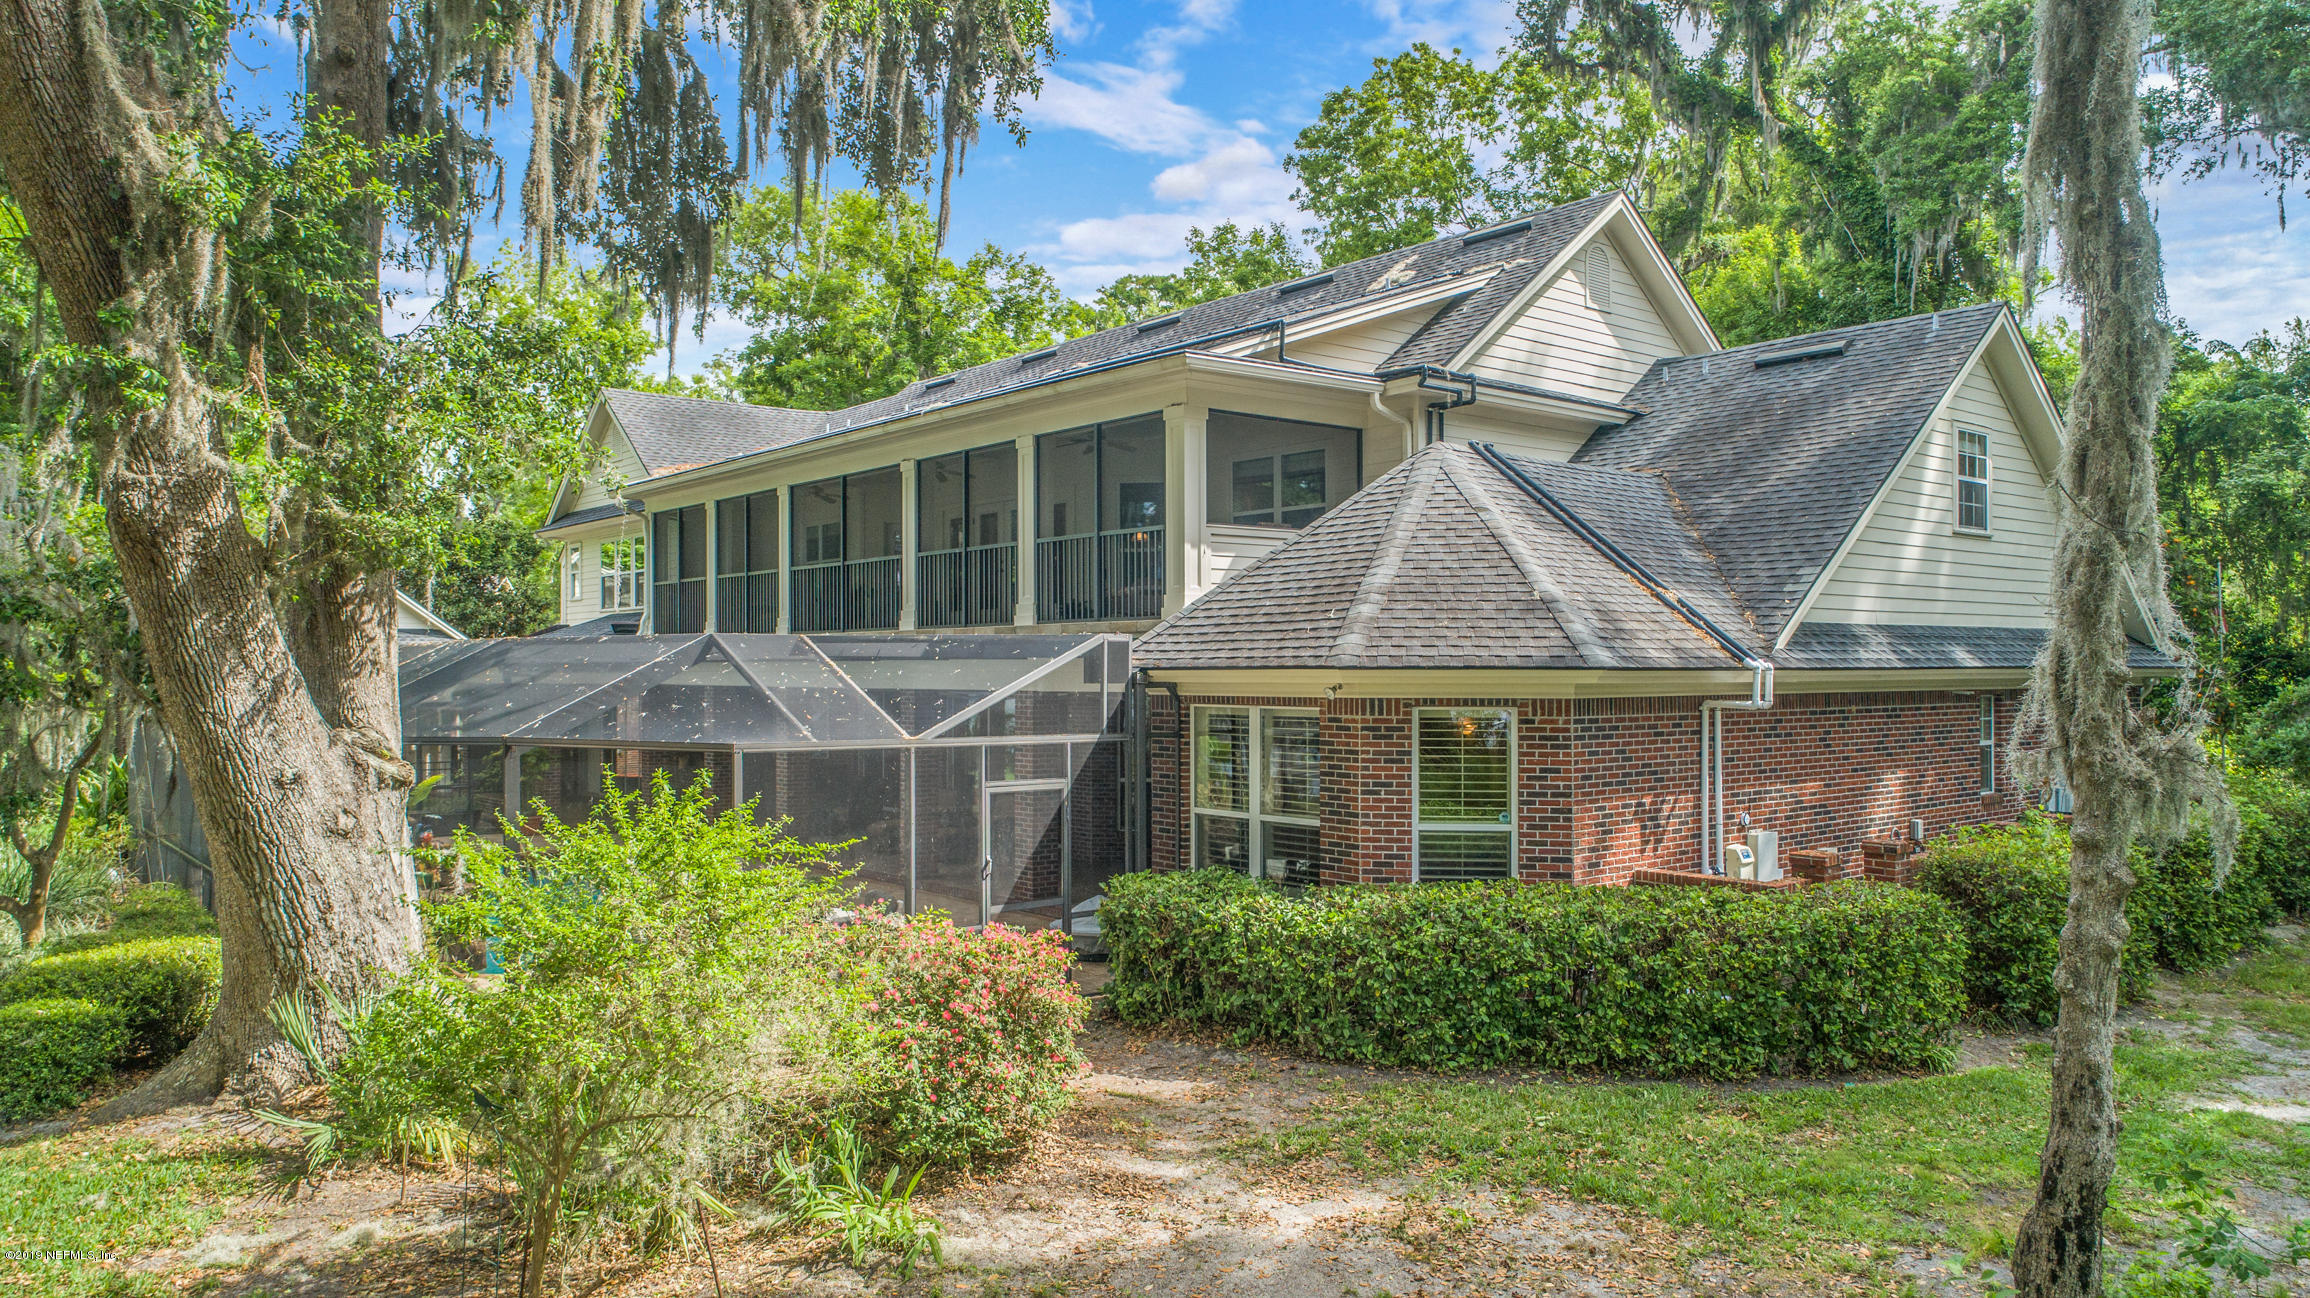 3030 State Road 13 St Johns, FL 32259